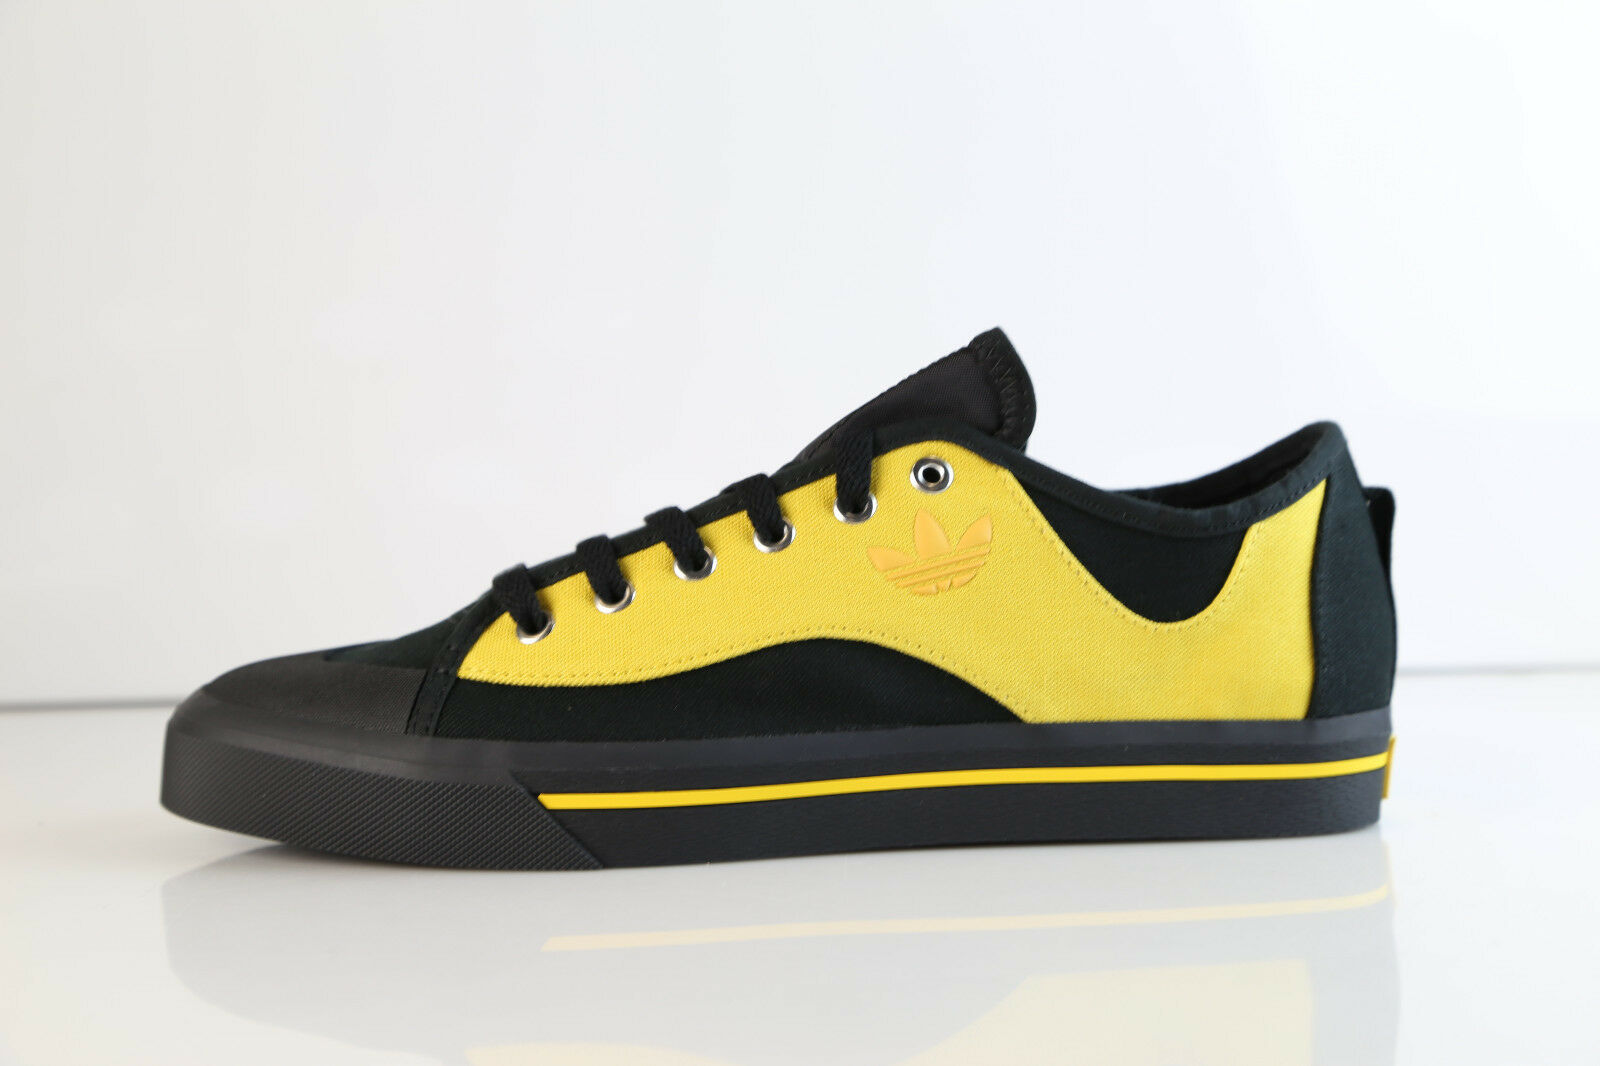 Adidas Raf Simons Spirit V Low Core Noir Jaune DA8760 9- rs casual stan